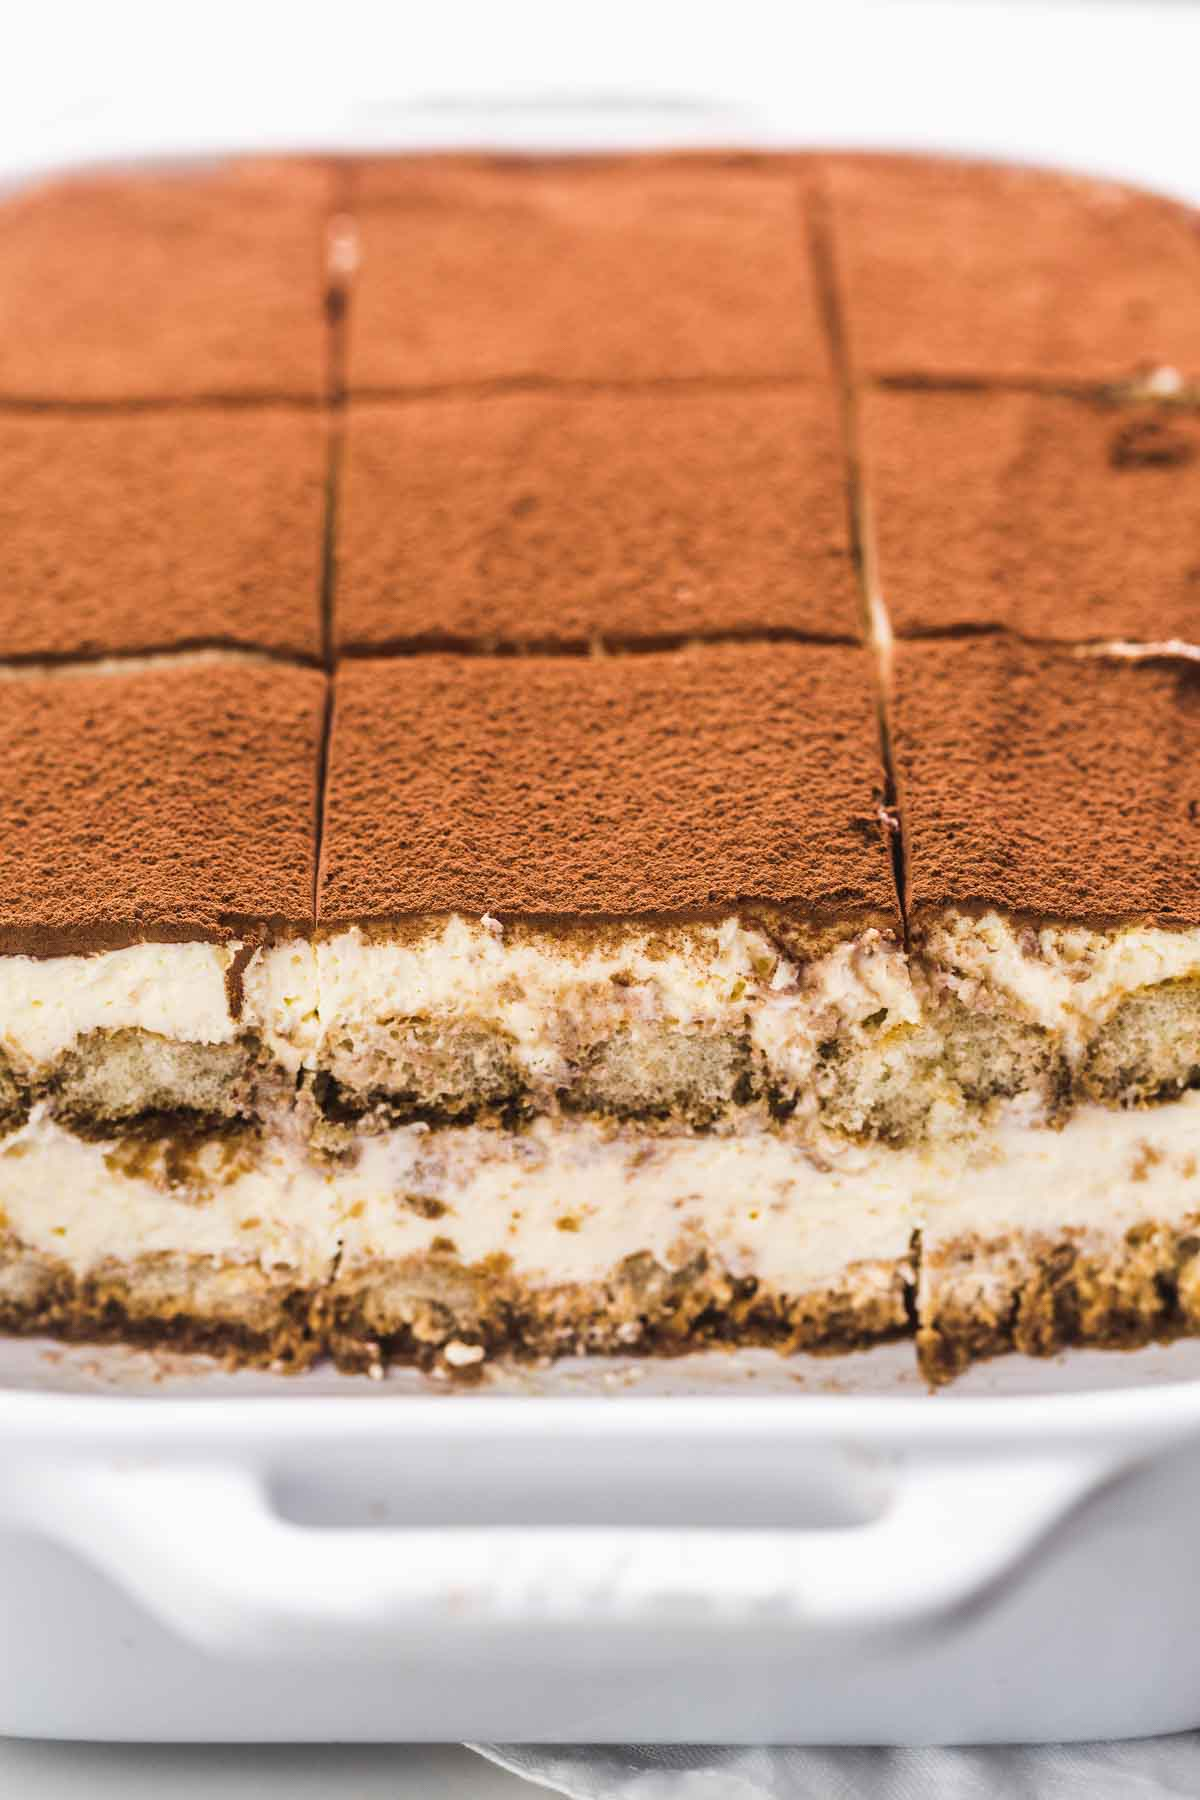 Close up shot of the tiramisu in a casserole dish showing the inside layers of the ladyfingers with the cream and espresso